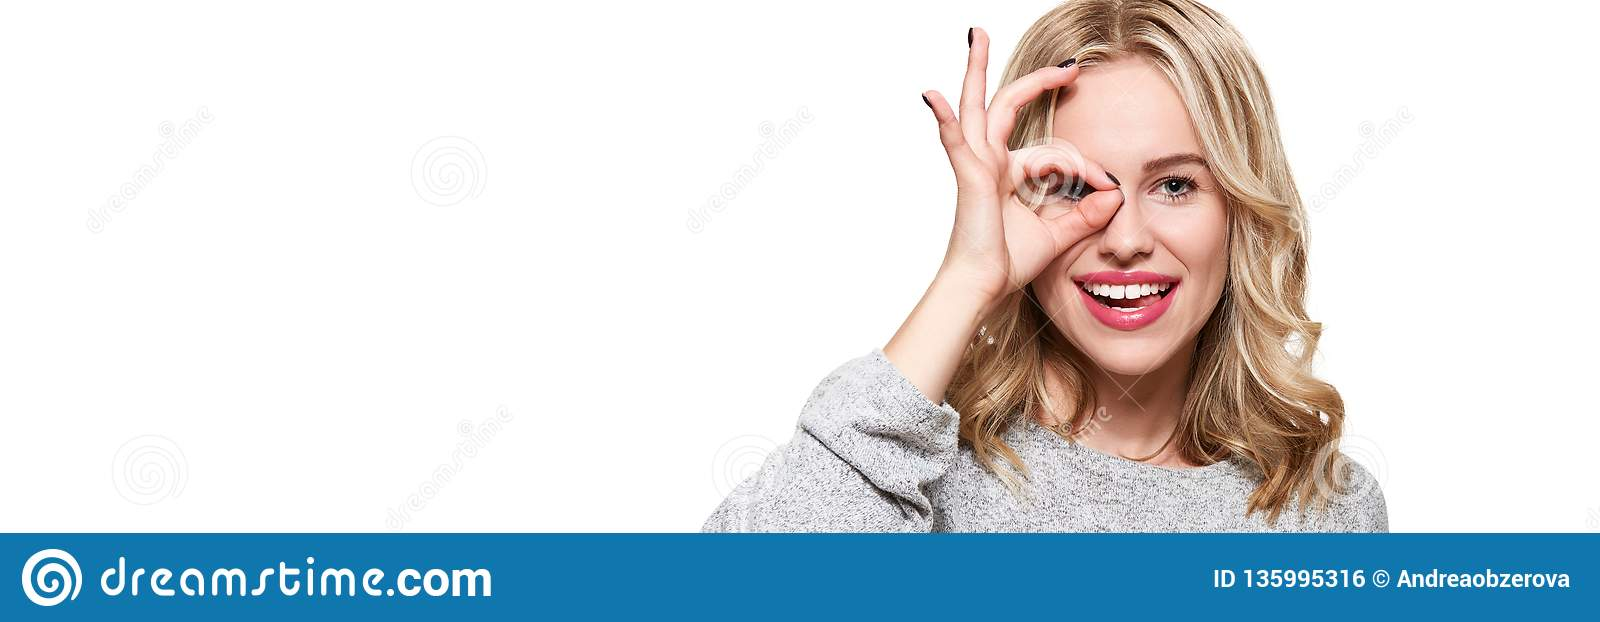 Portrait of beautiful excited woman in casual clothing smiling and showing ok sign at camera isolated over white background.